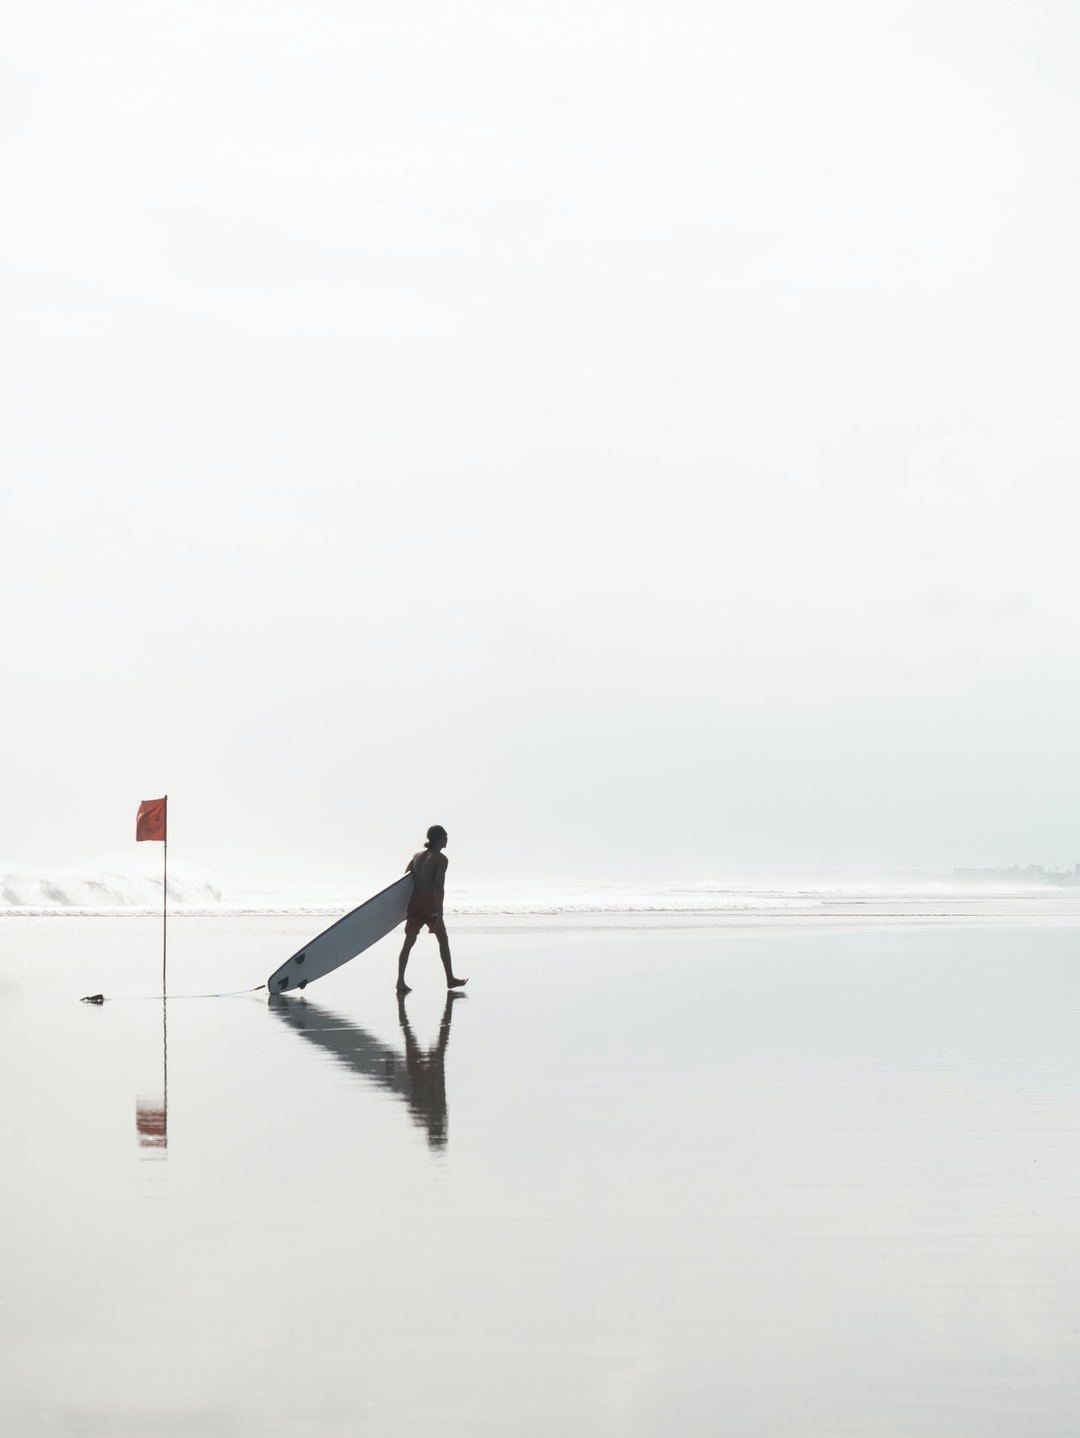 when sun is getting low at double six beach in bali, seashore  becomes a giant mirror. wet sand reflects light letting to take quite cool snaps. had a lot of fun time there chasing surfers with my camera!